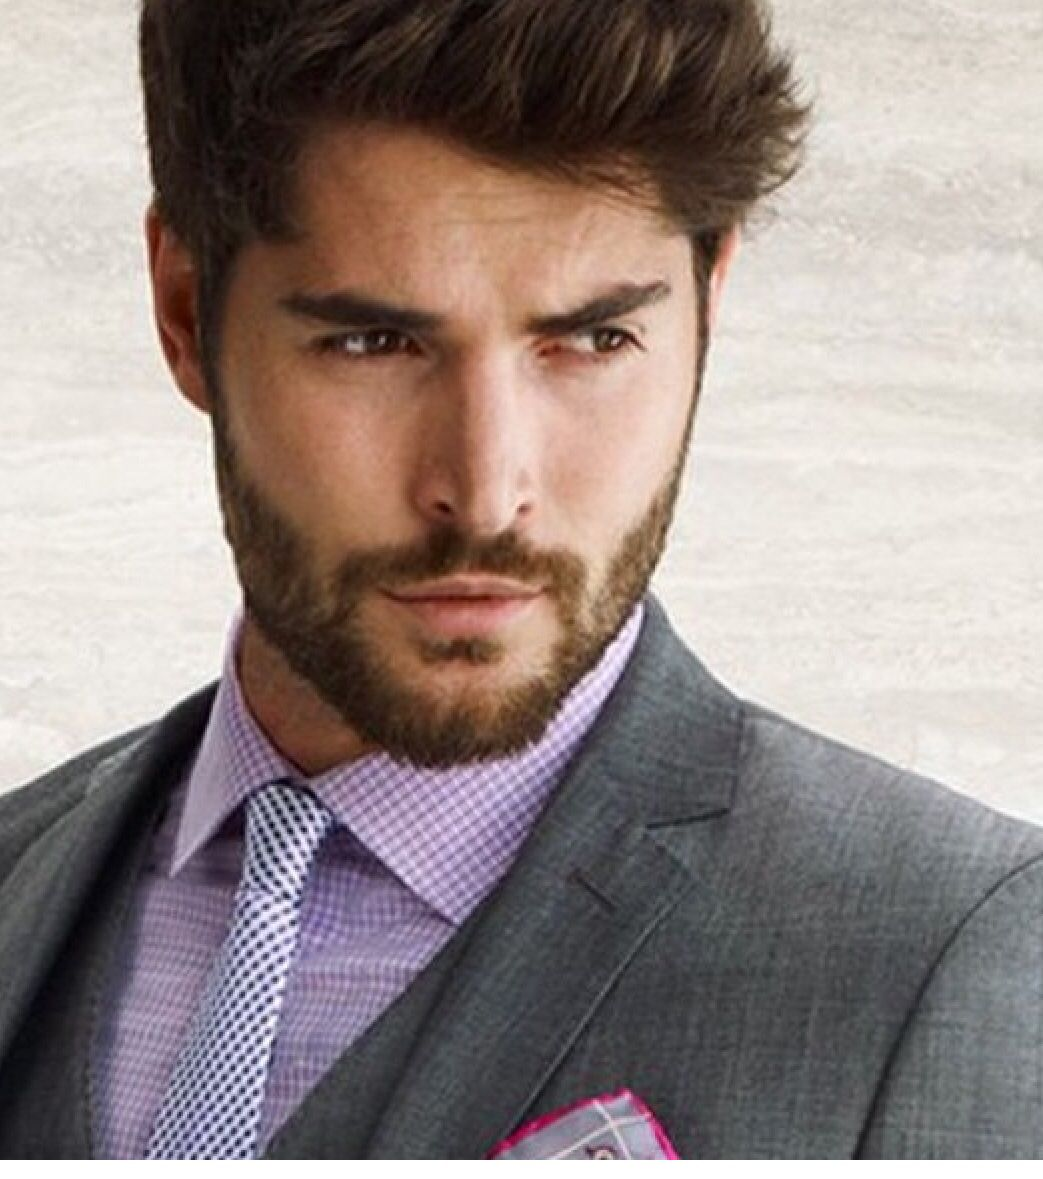 Nick Bateman - canadian model and actor